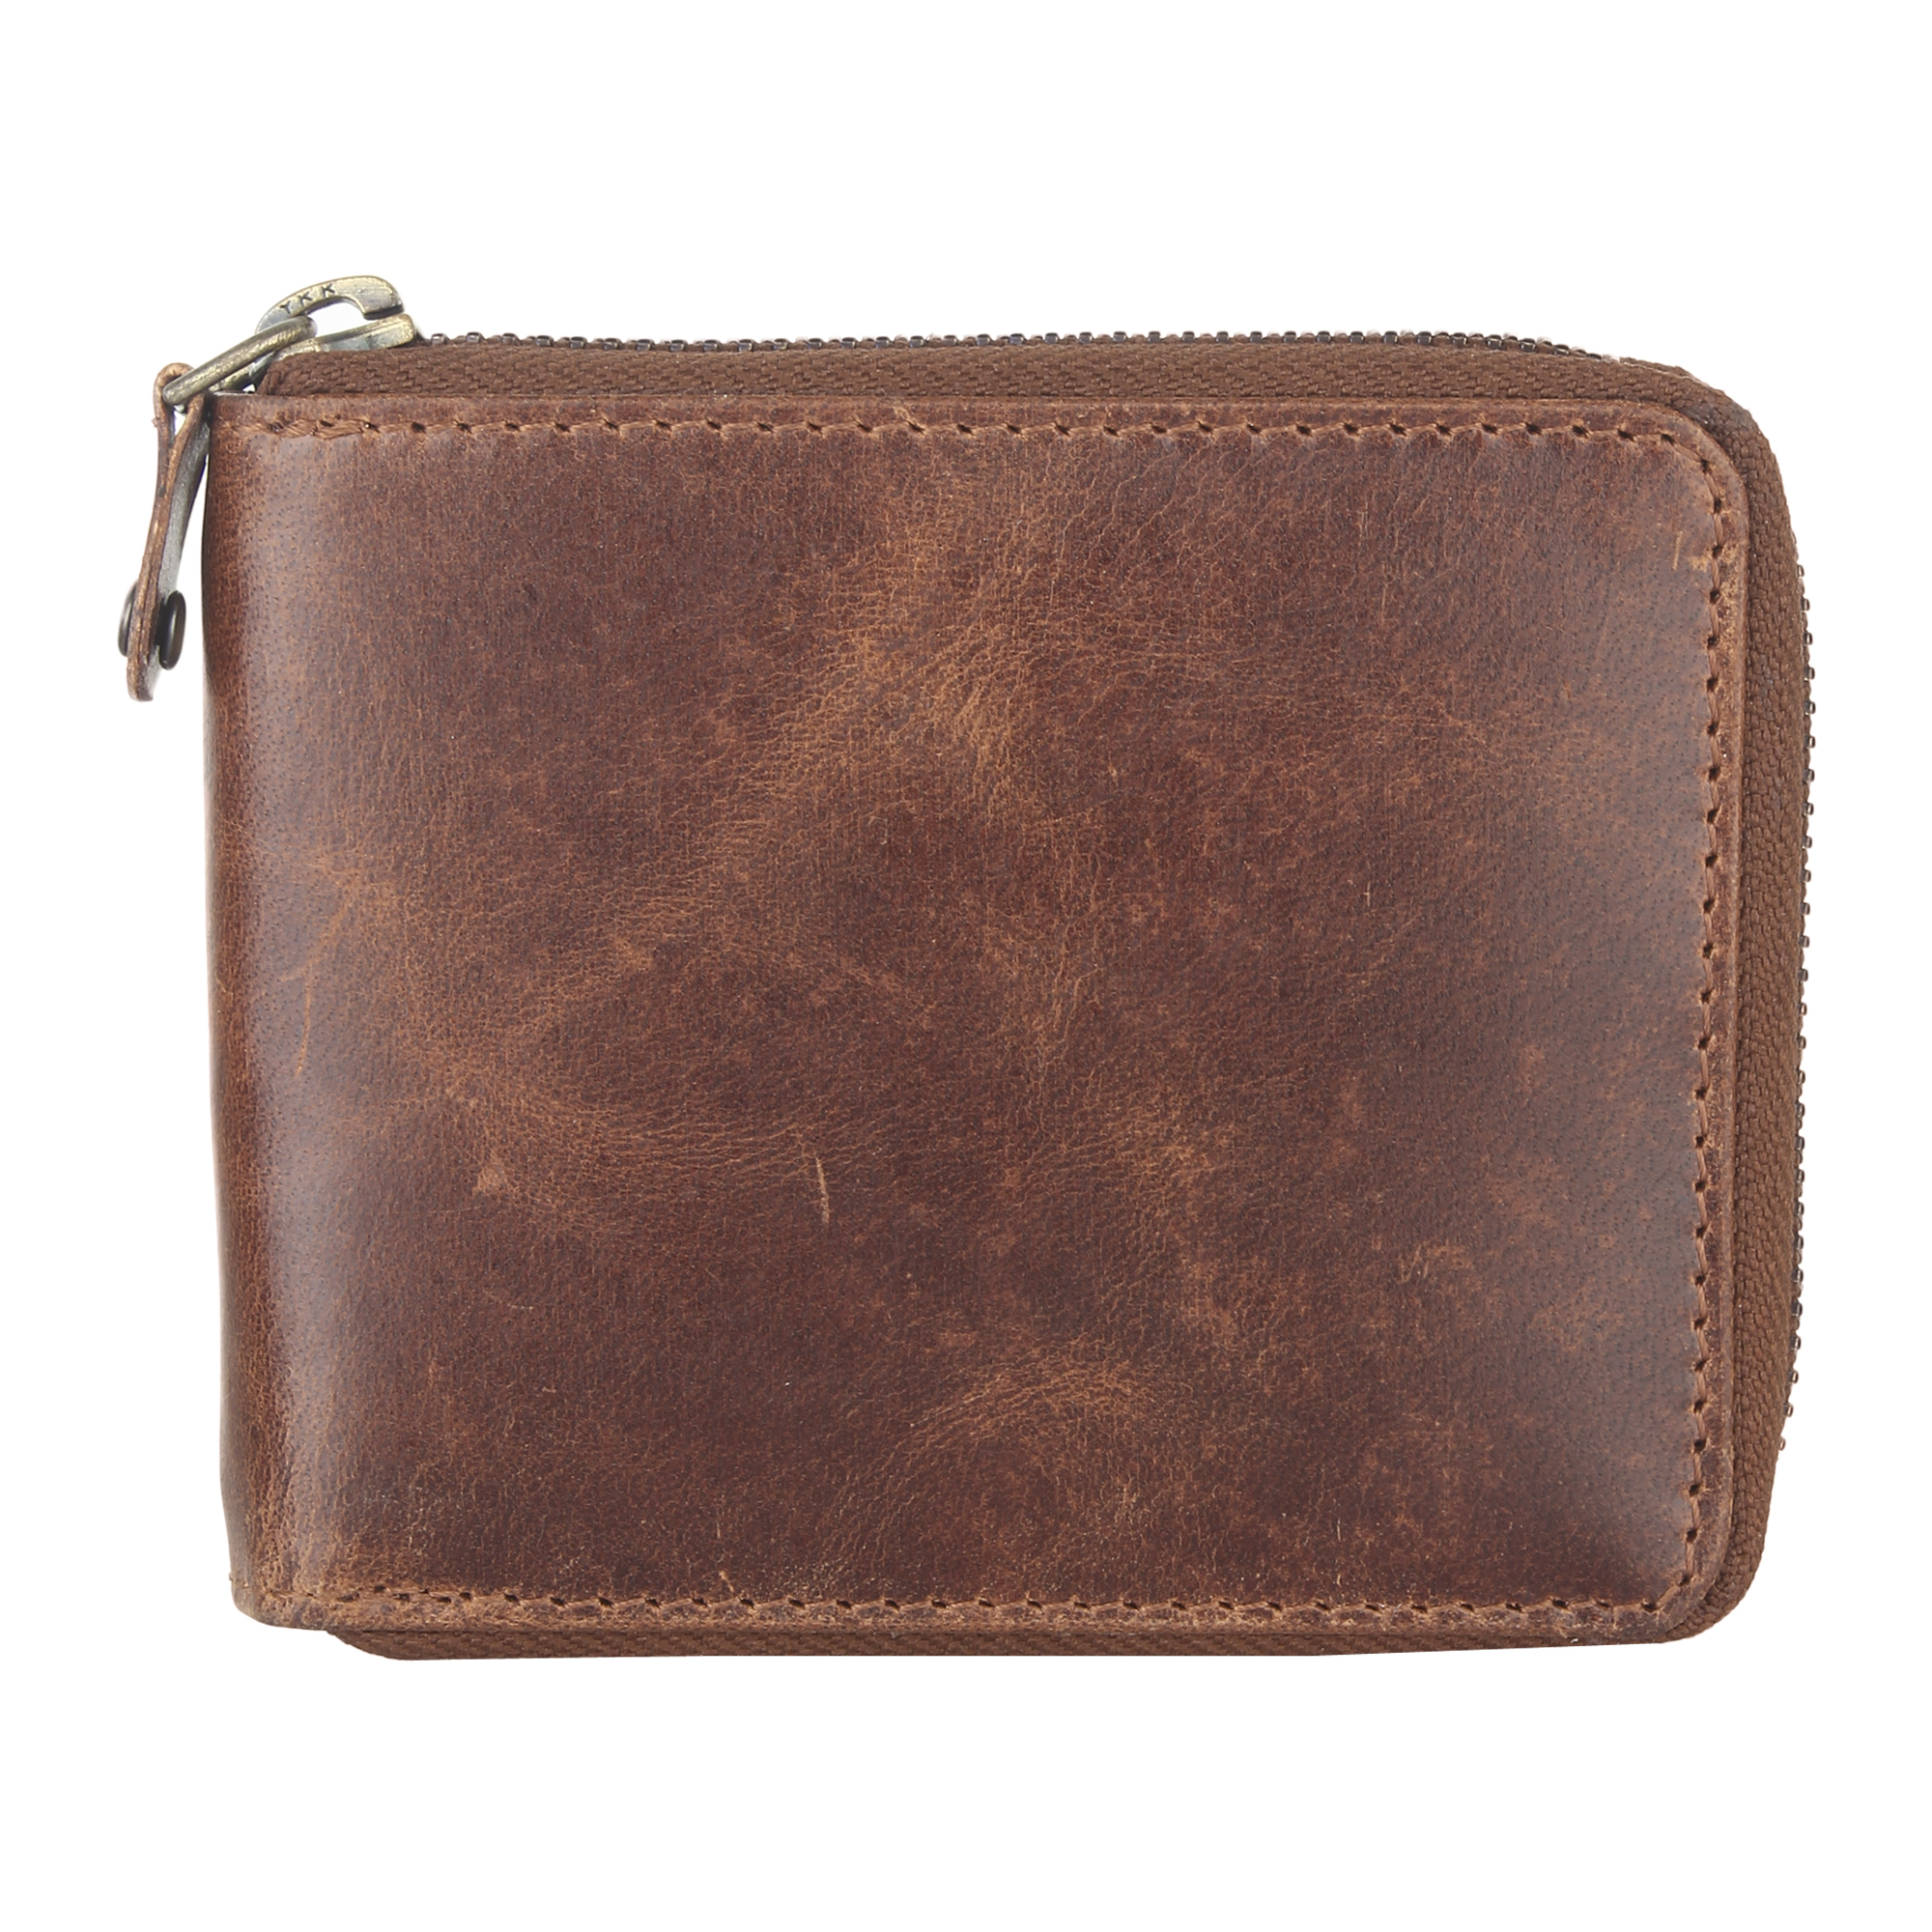 Leather Wallets Manufacturers in Palermo, Leather Wallets Importers in Palermo, Leather Wallets Buyers in Palermo, Leather Wallets Suppliers in Palermo, Leather Wallets Wholesalers in Palermo, Leather Wallets T